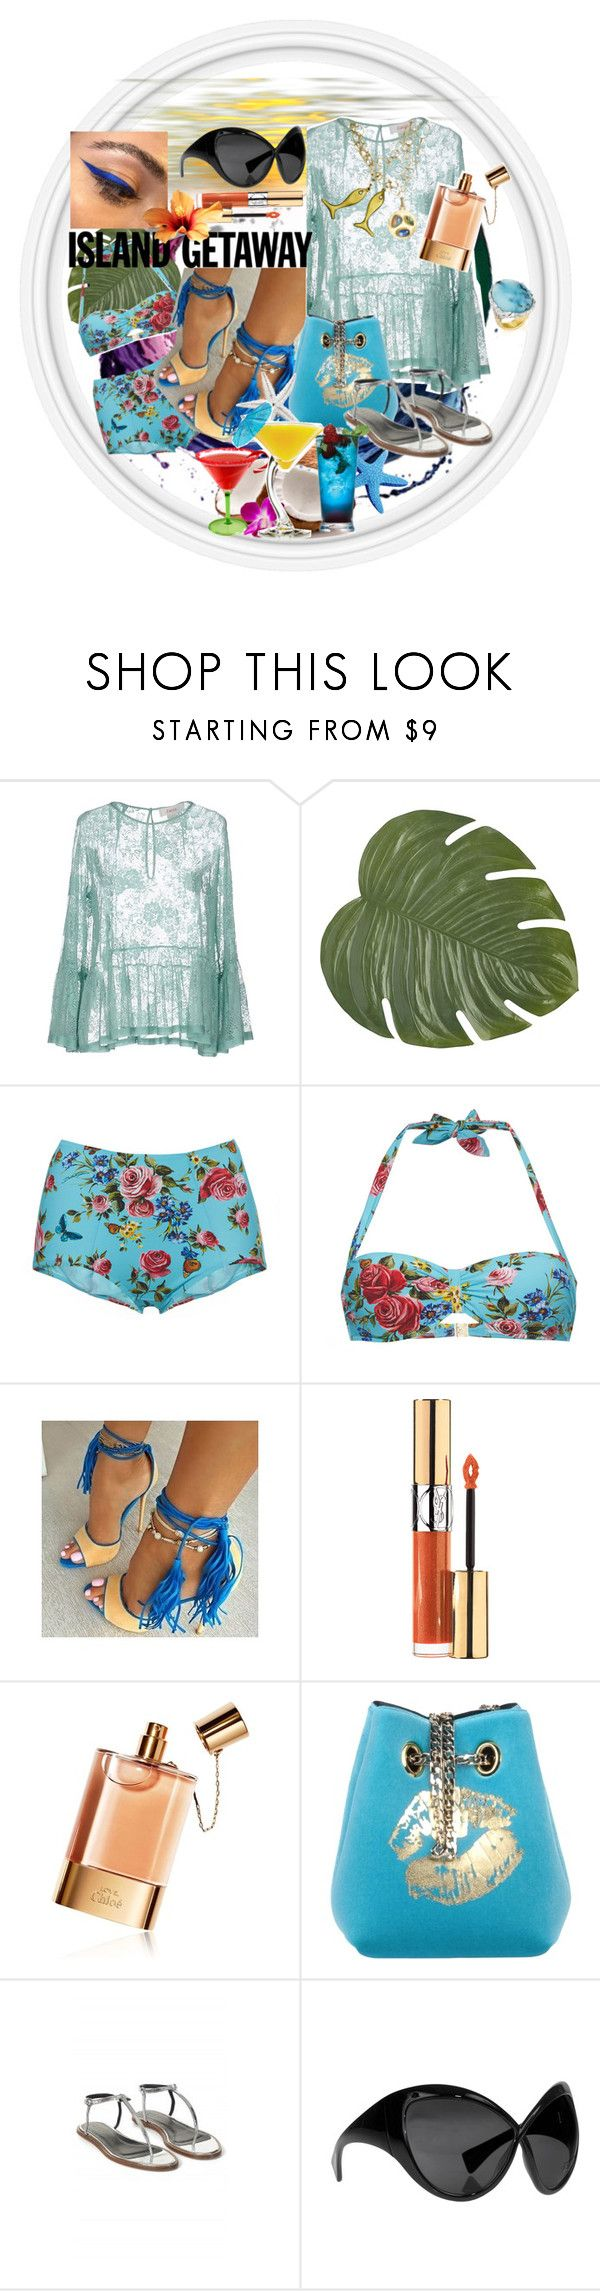 """#islandgetaway"" by dominique-boiche ❤ liked on Polyvore featuring jucca, Pier 1 Imports, Dolce&Gabbana, Yves Saint Laurent, Chloé, La Fille Des Fleurs, TIBI, Tom Ford, TIKI and BYSISKA2017"